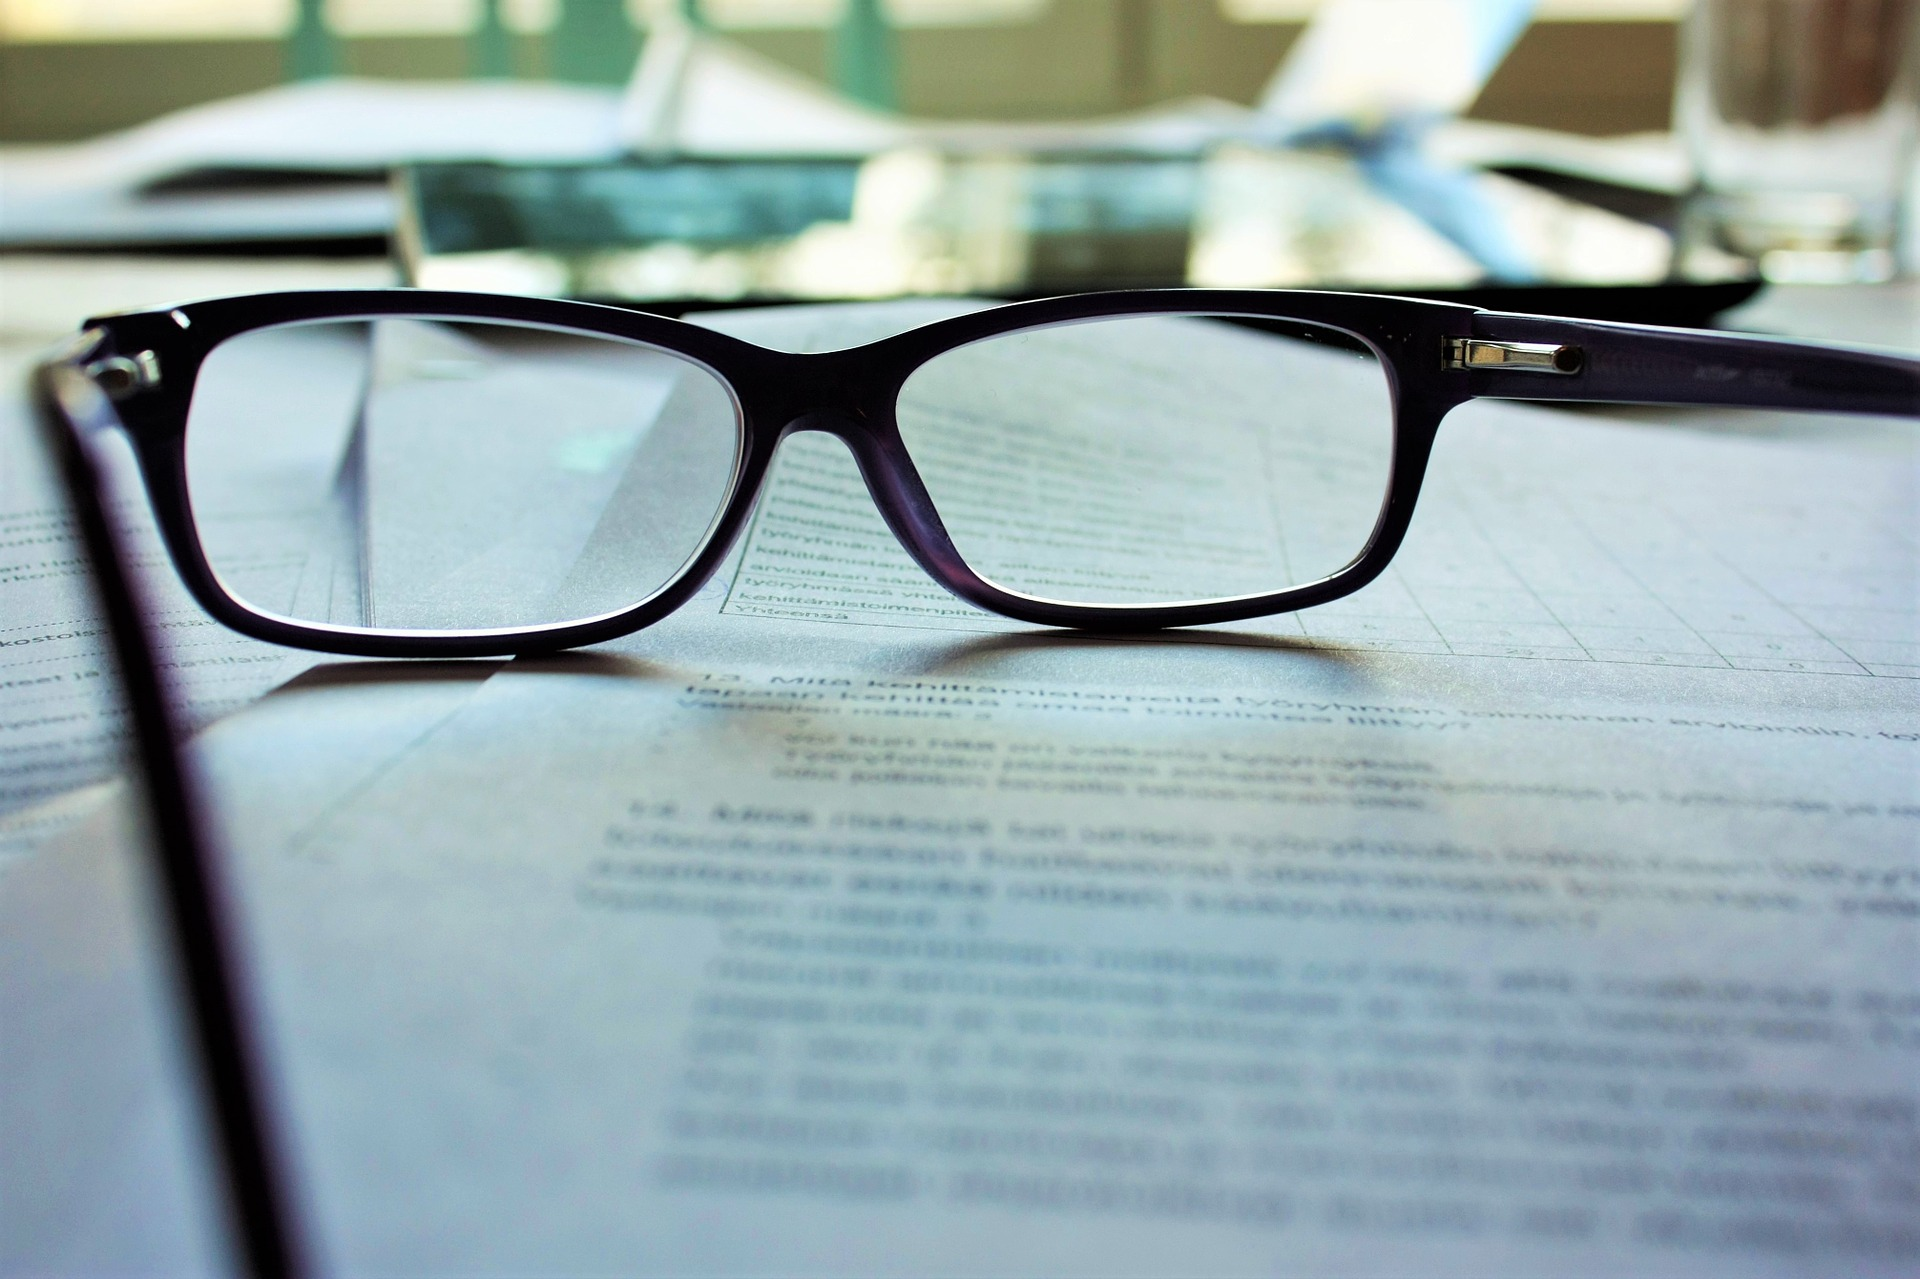 reading glasses for checking small print